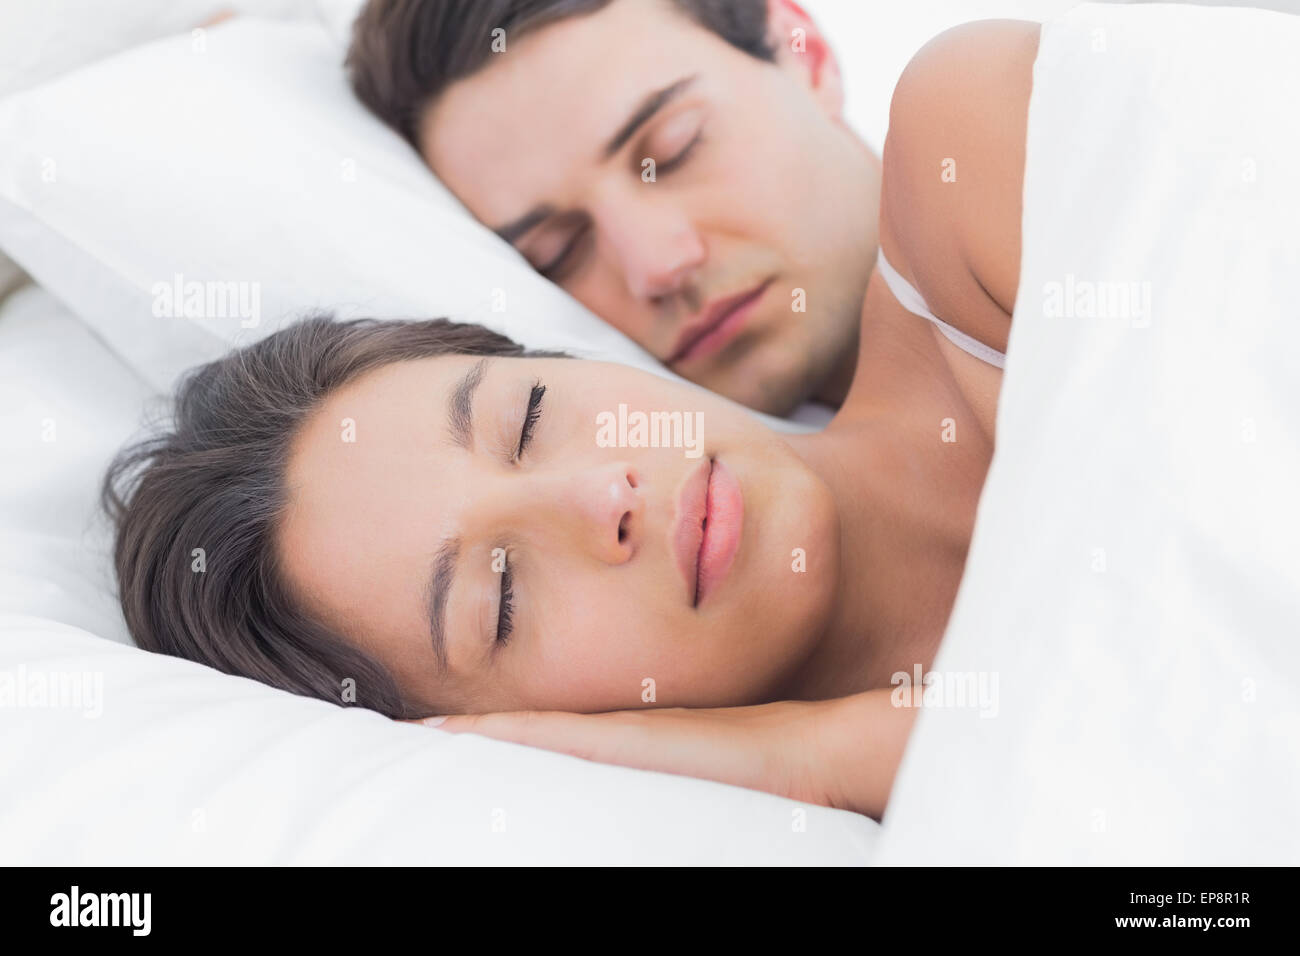 Portrait of an attractive woman sleeping next to her partner - Stock Image